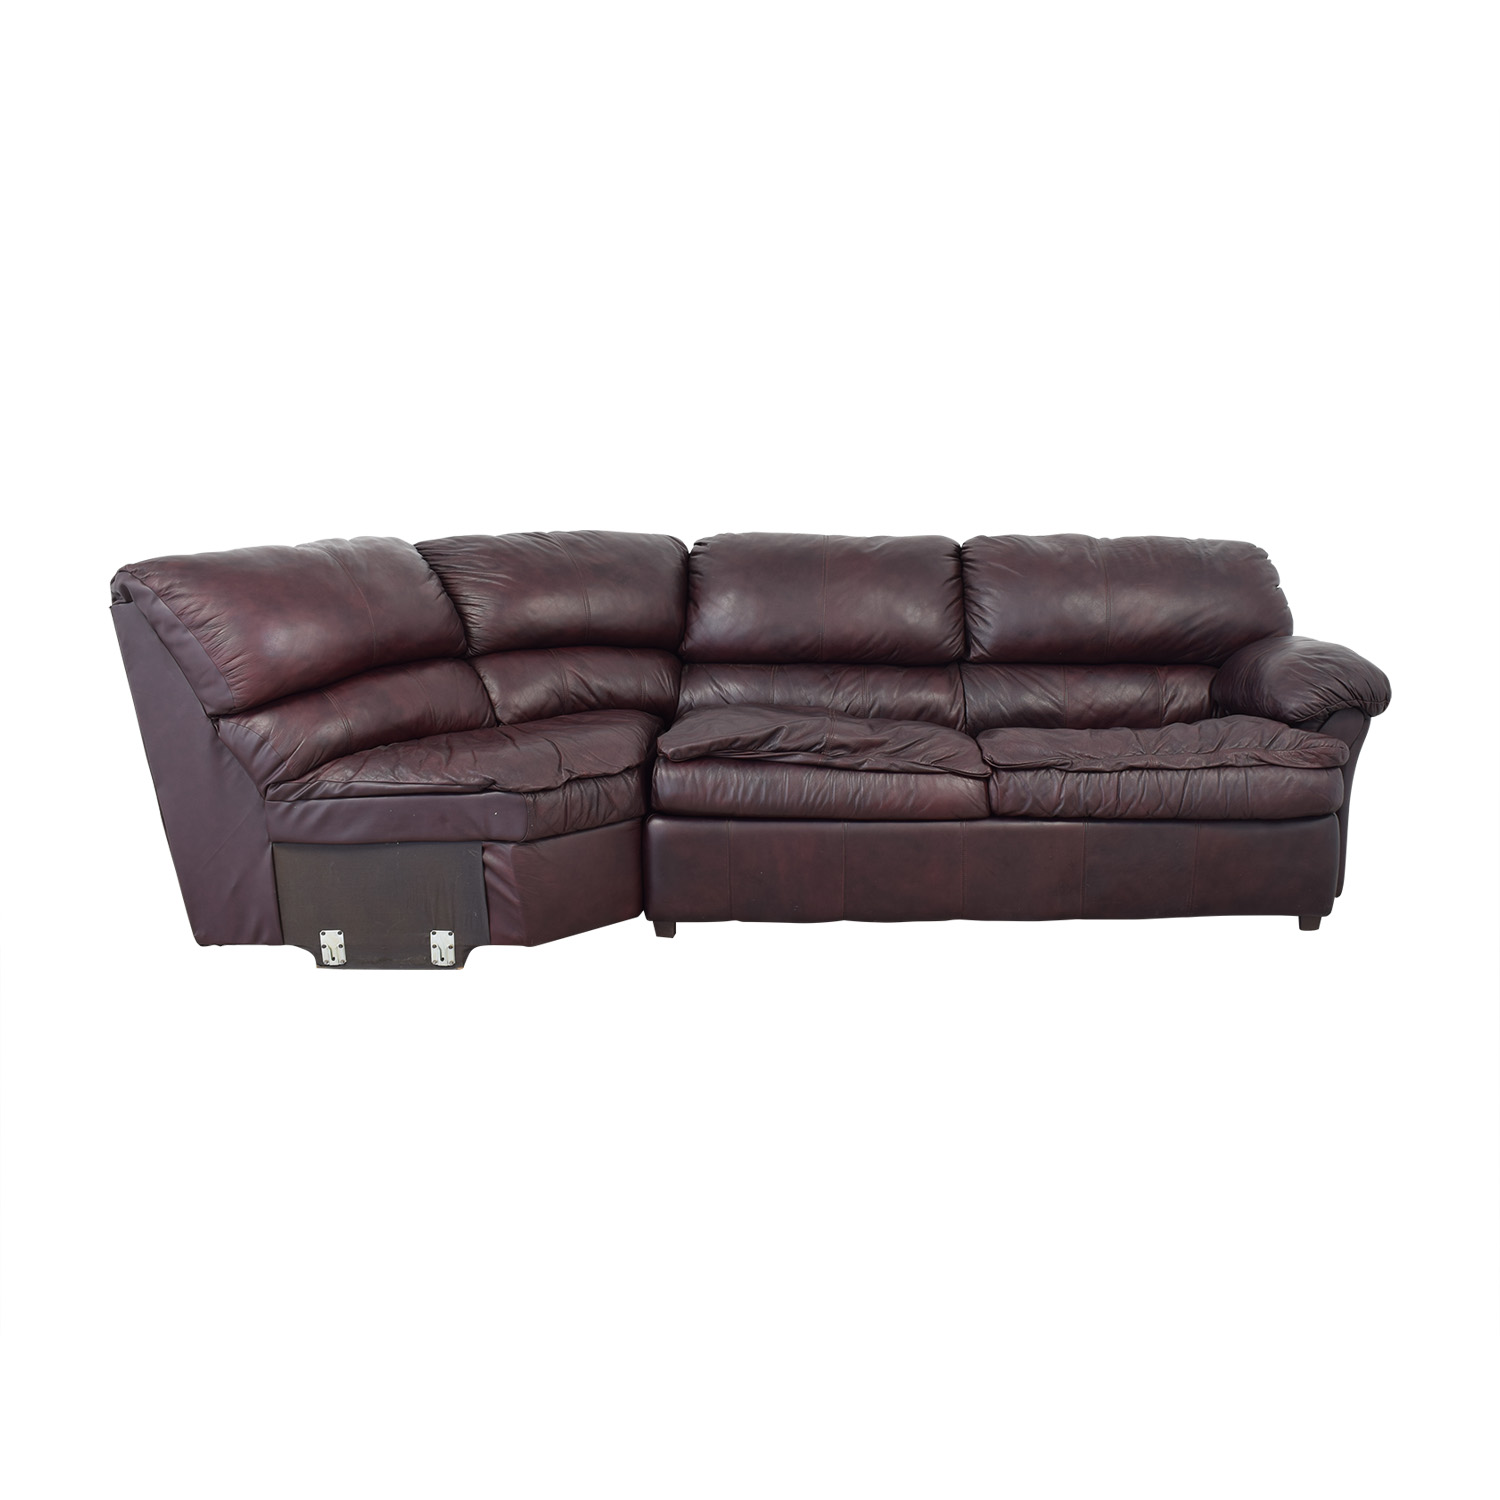 Leather Sleeper Sectional Sofa Bed Sofas